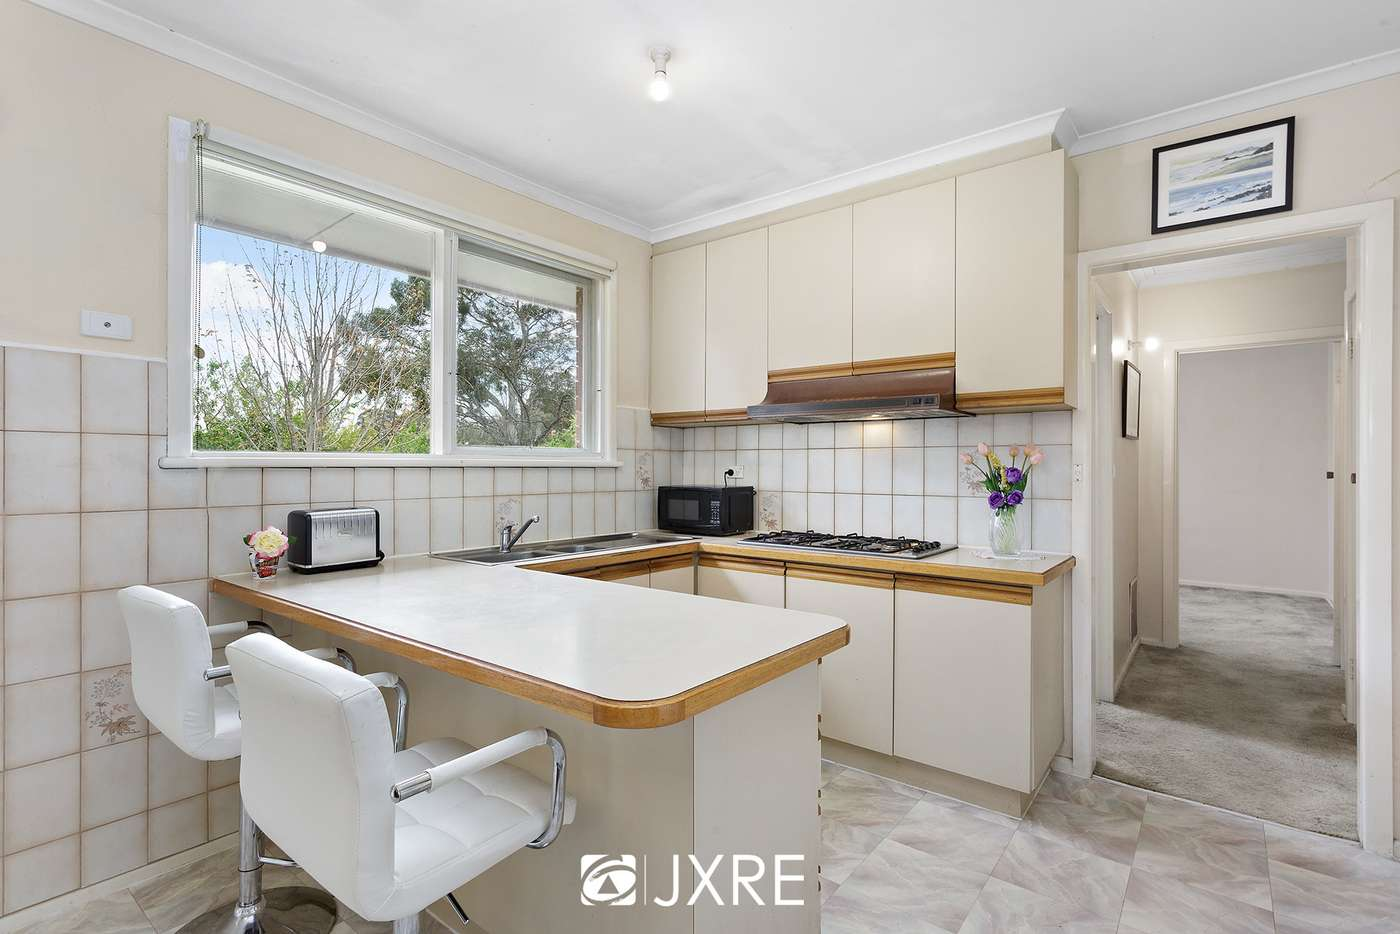 Fifth view of Homely house listing, 21 Hampstead Crescent, Glen Waverley VIC 3150